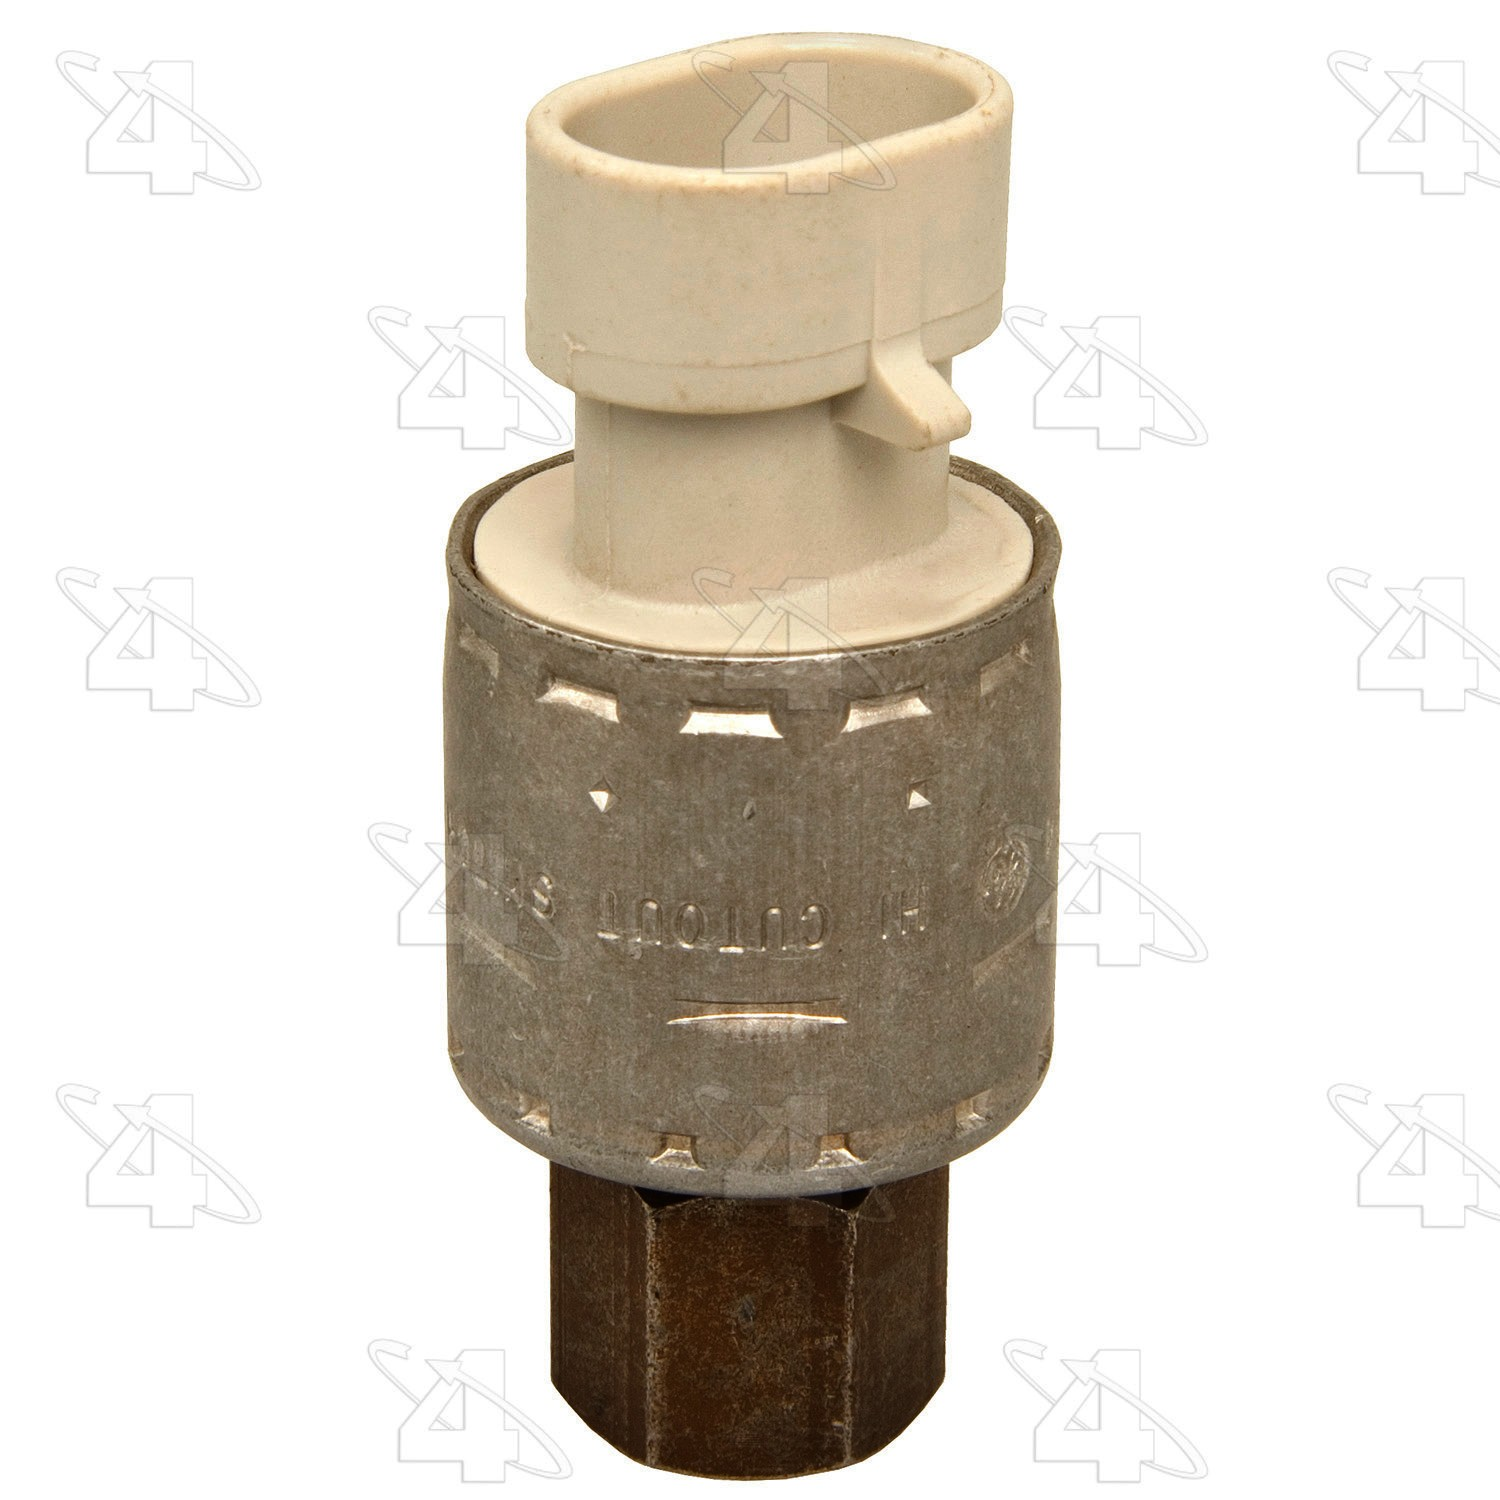 Four Seasons 20916 High Cut-Out Pressure Switch